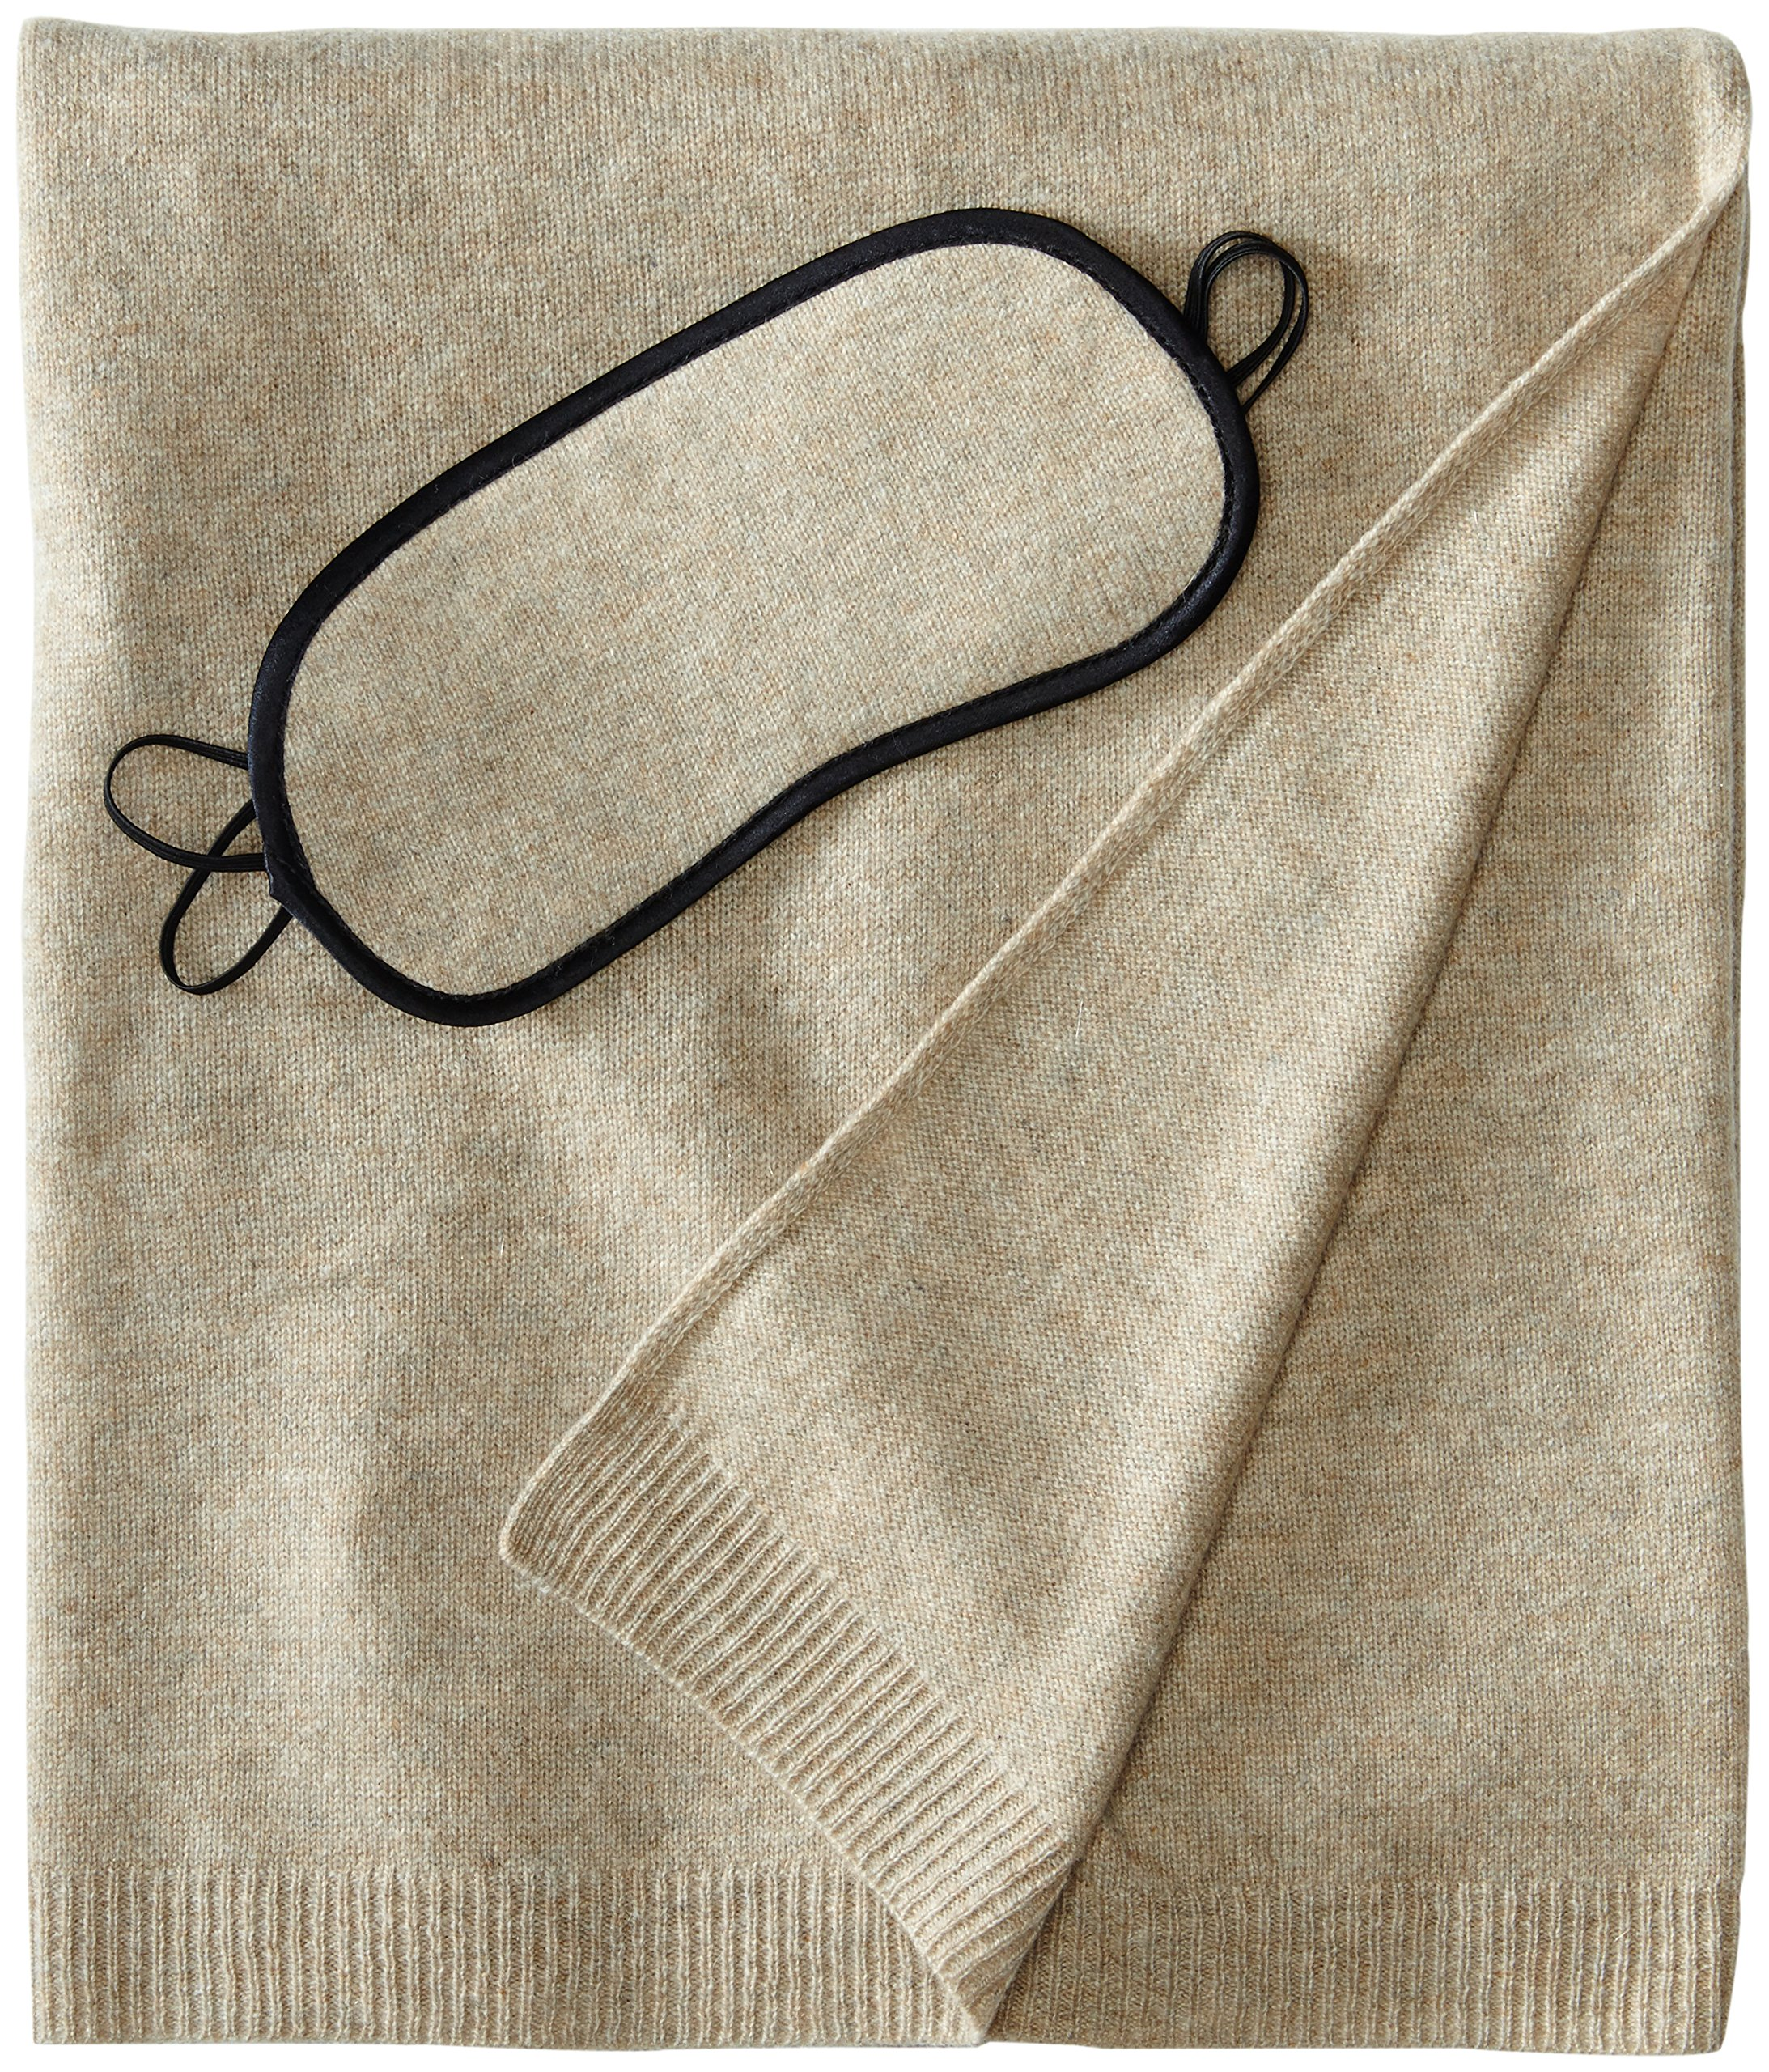 Sofia Cashmere 100% Cashmere Cozy Travel Set with Blanket, Eye Mask, and Bag, Heather Taupe, One Size